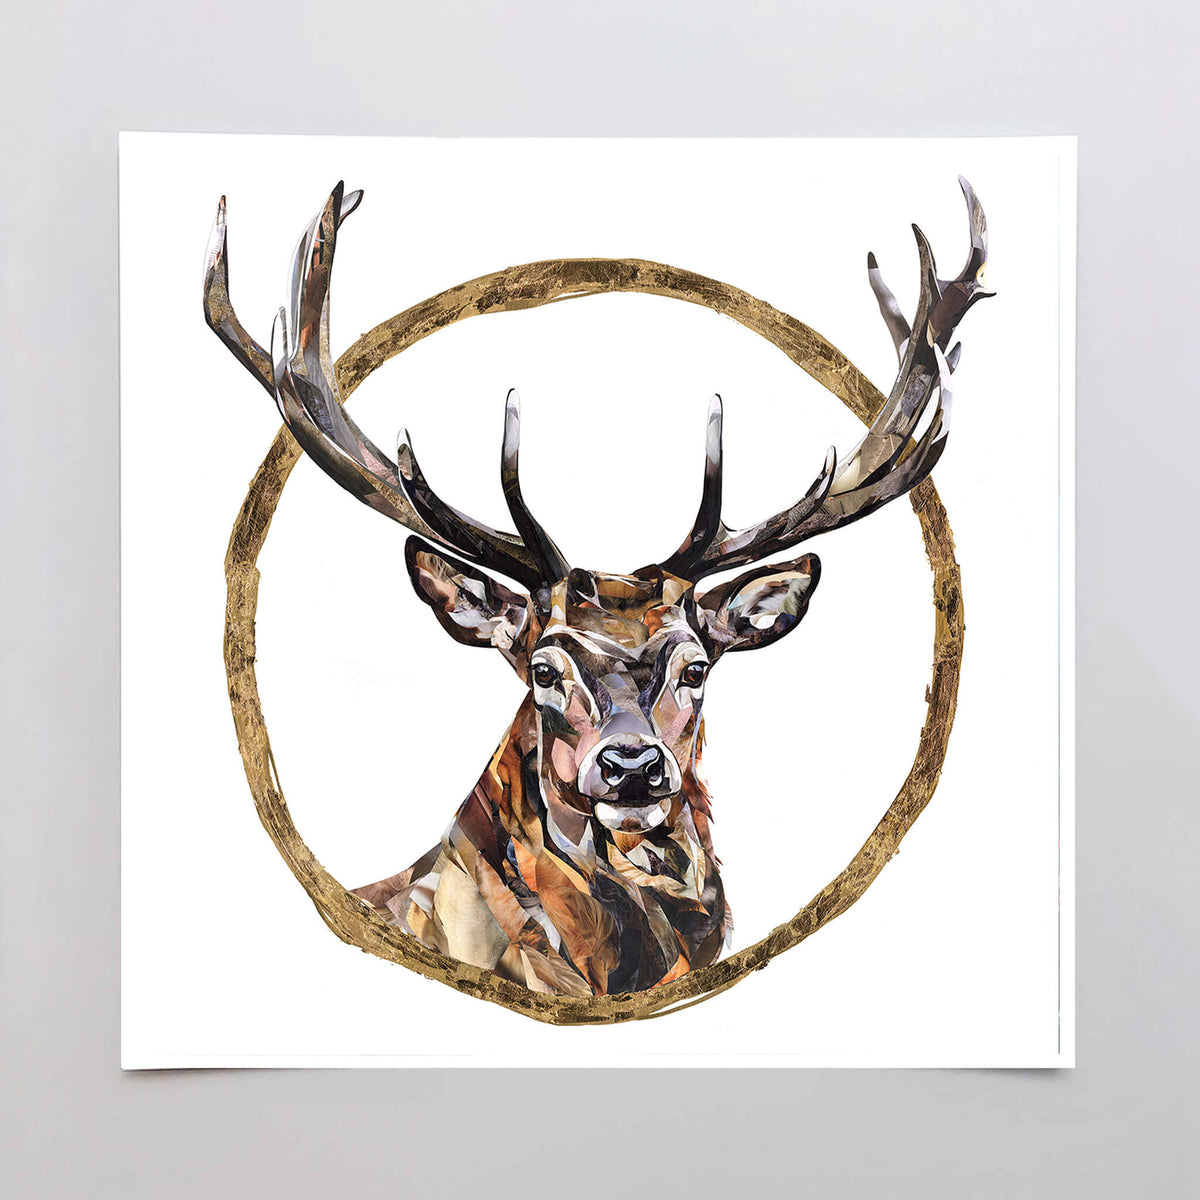 The Gold Stag